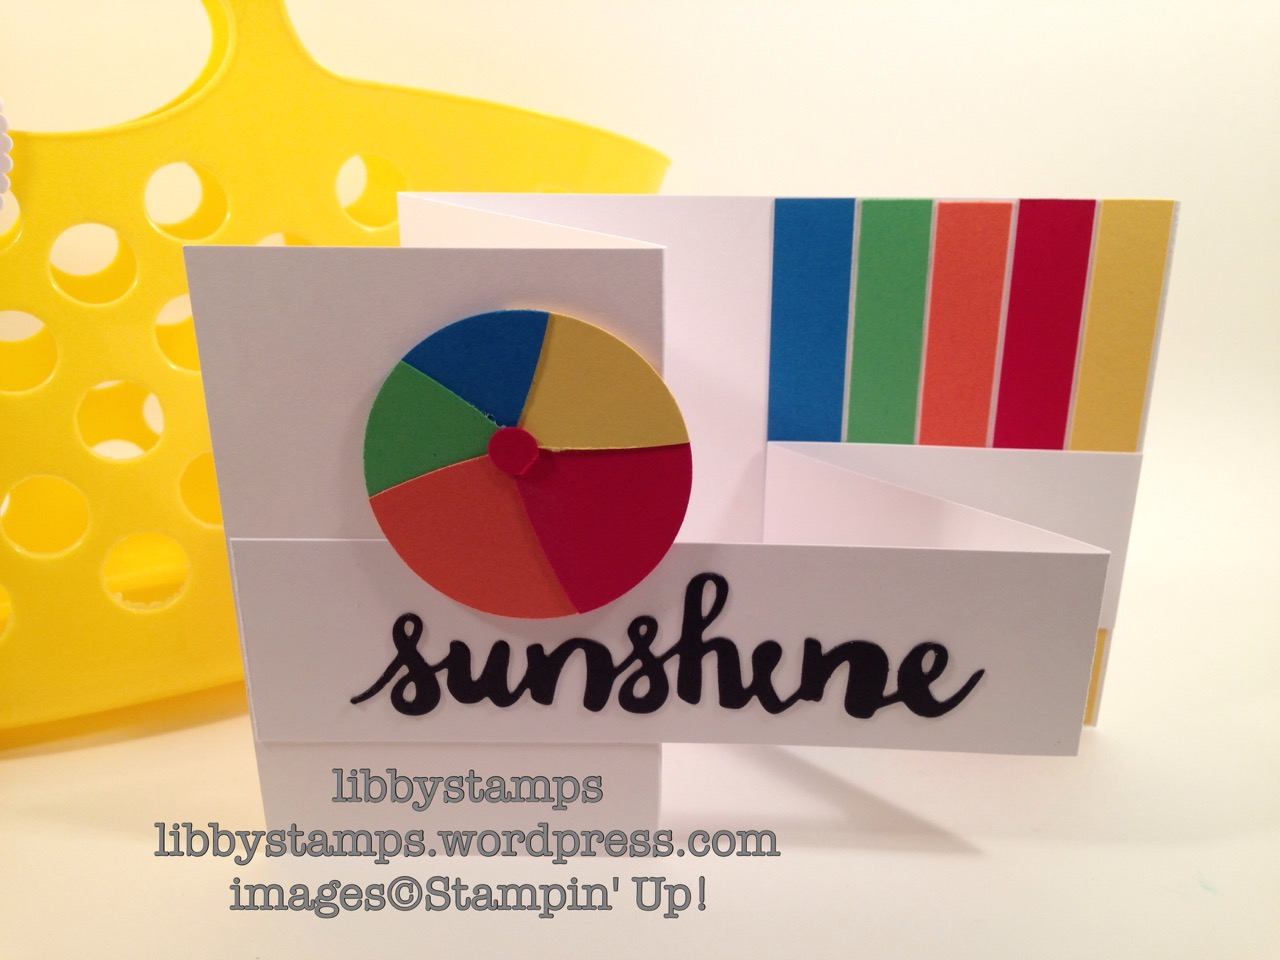 libbystamps, stampin up, Layering Circles Framelits, Sunshine Wishes Thinlits, beach ball, Beach Party